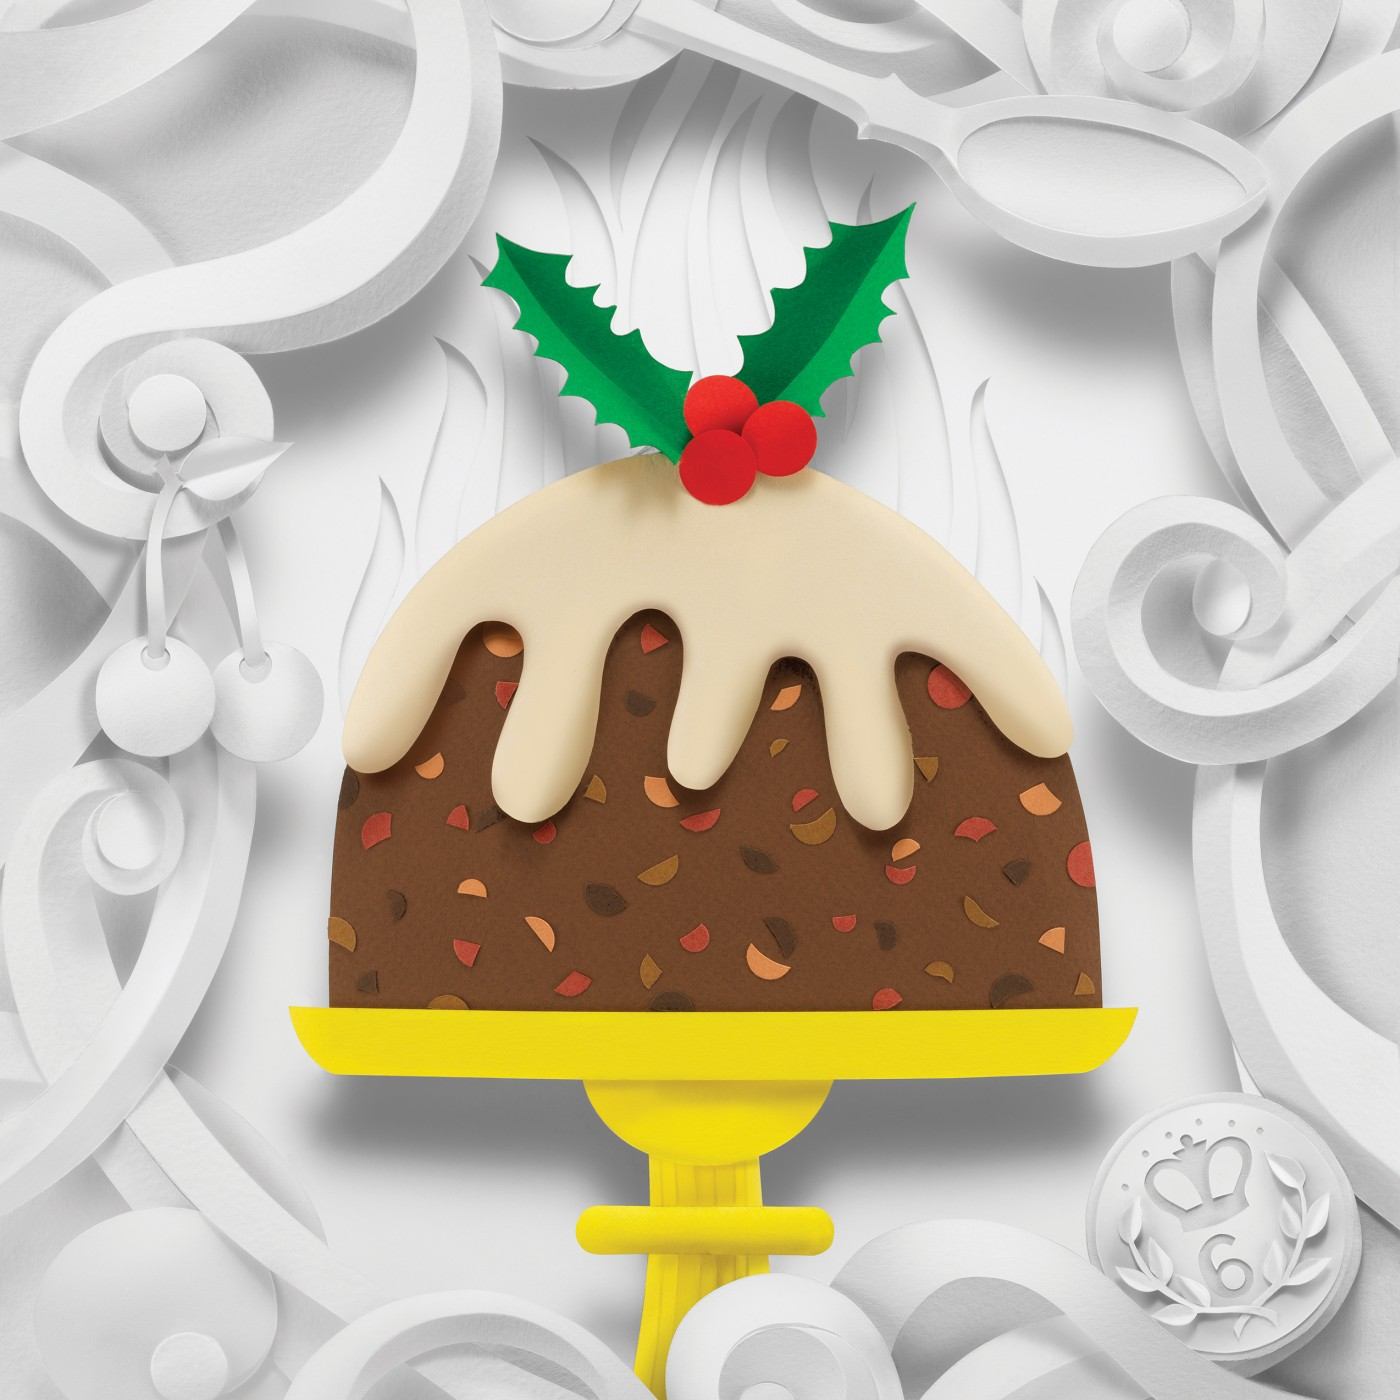 Delightful Christmas Stamp Collection Handcrafted in Paper by Helen Musselwhite - Figgy Pudding